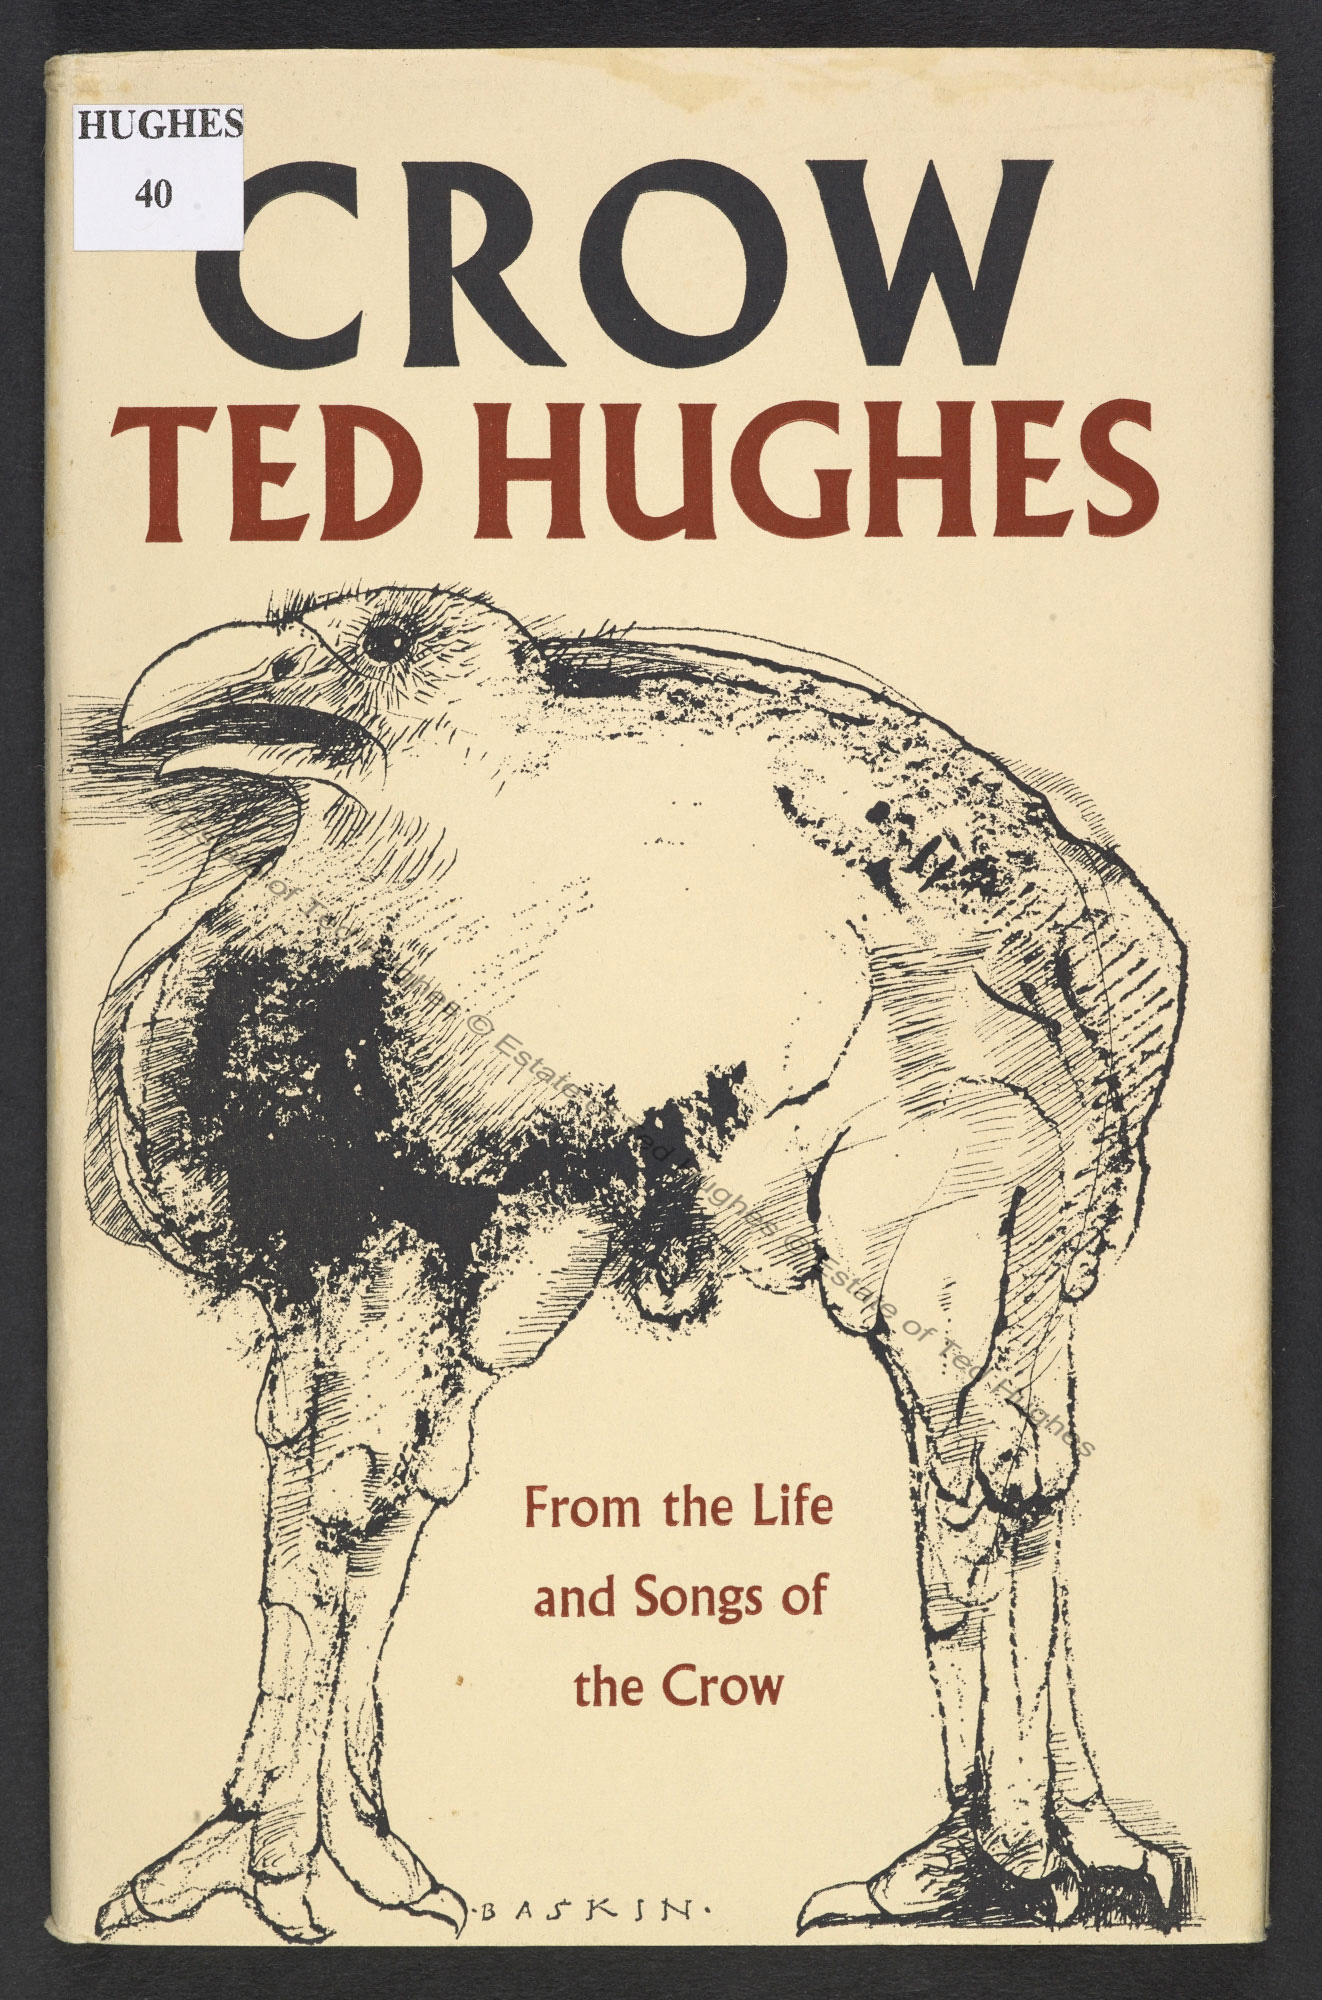 Crow by Ted Hughes, with artwork by Leonard Baskin